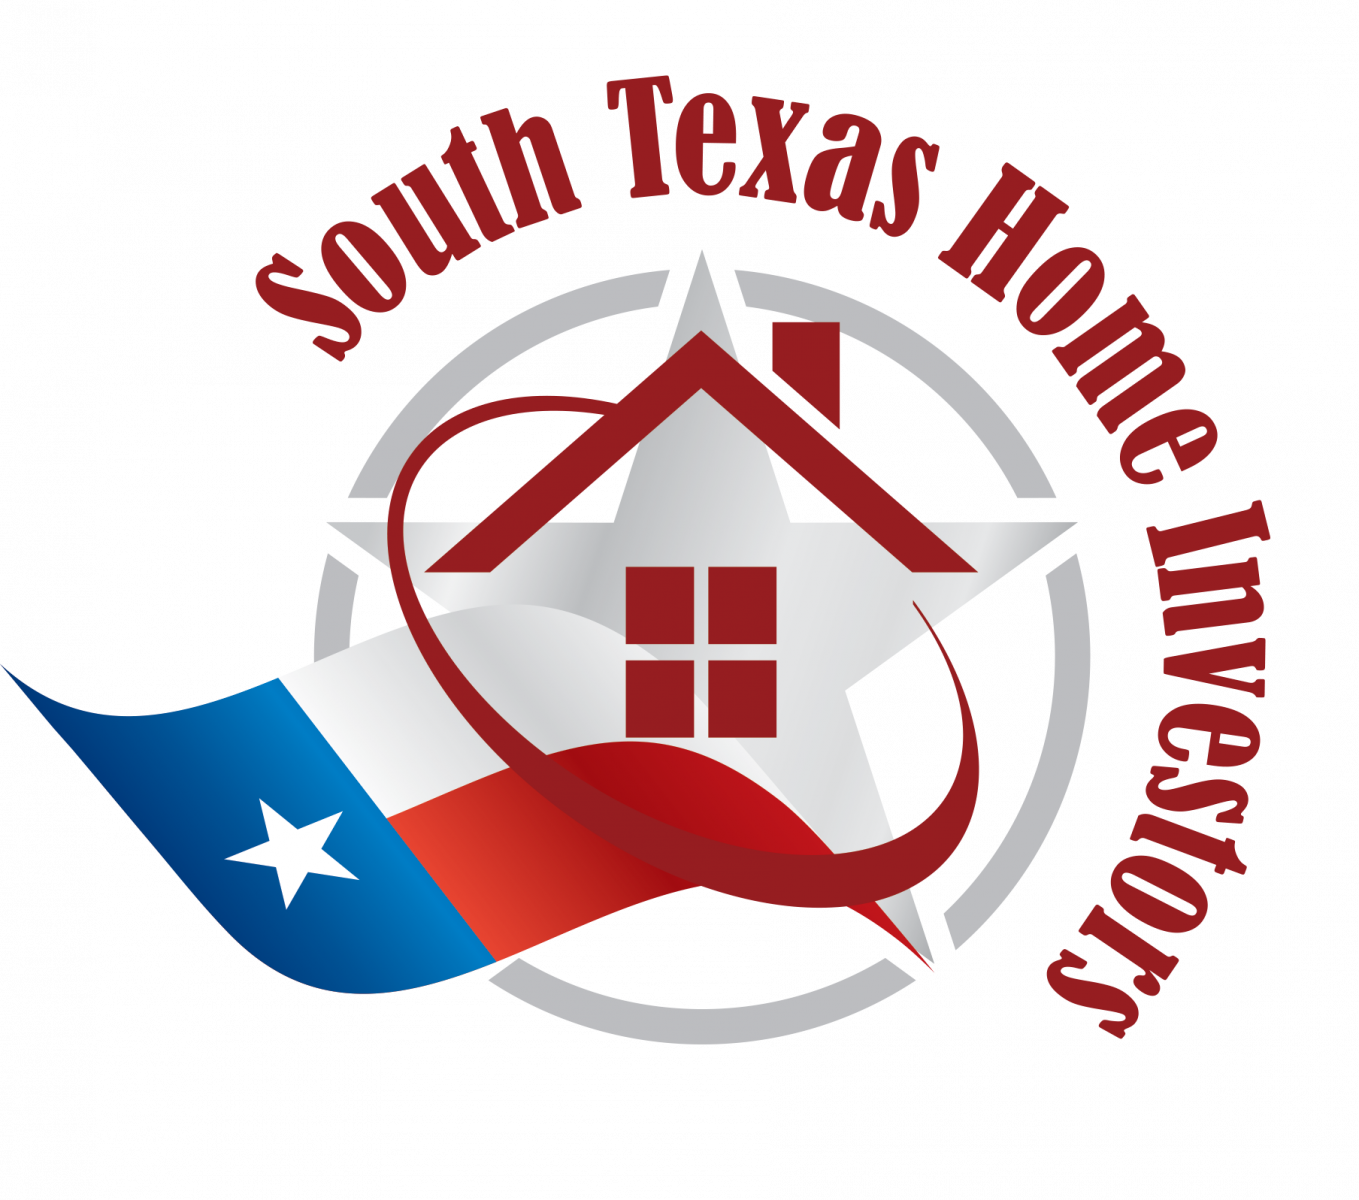 We Buy Houses San Antonio – Sell My House Fast San Antonio logo